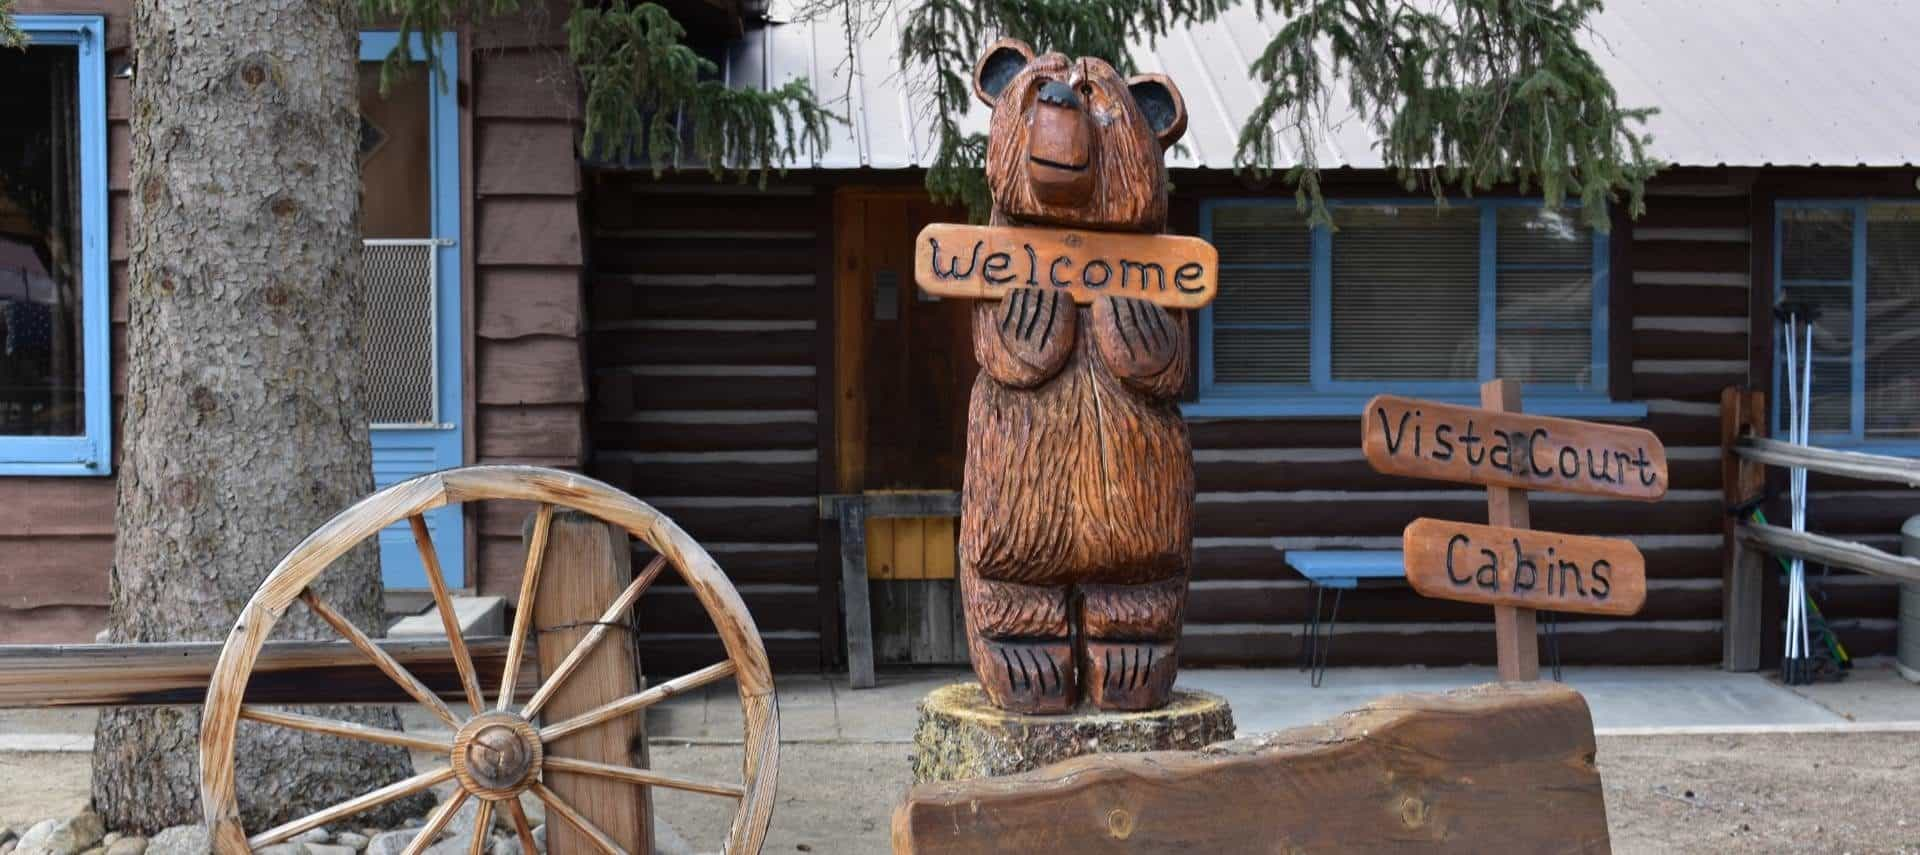 Wooden cottage with blue painted door and trim with a carved wooden bear holding a welcome sign